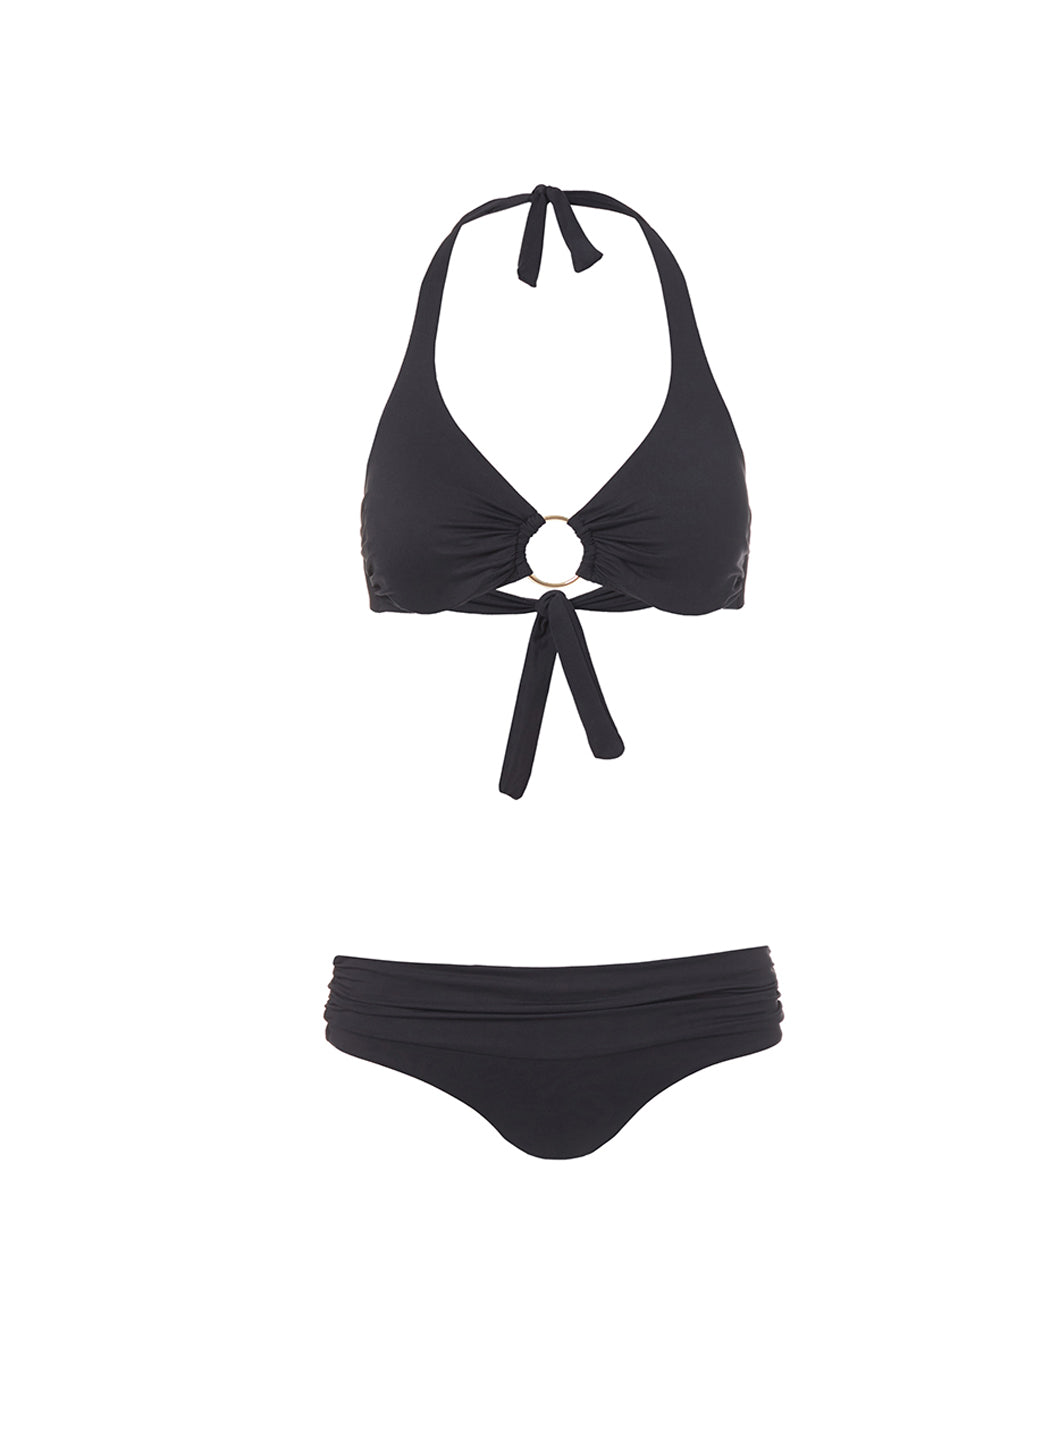 Brussels Black Halterneck Ring Supportive Bikini